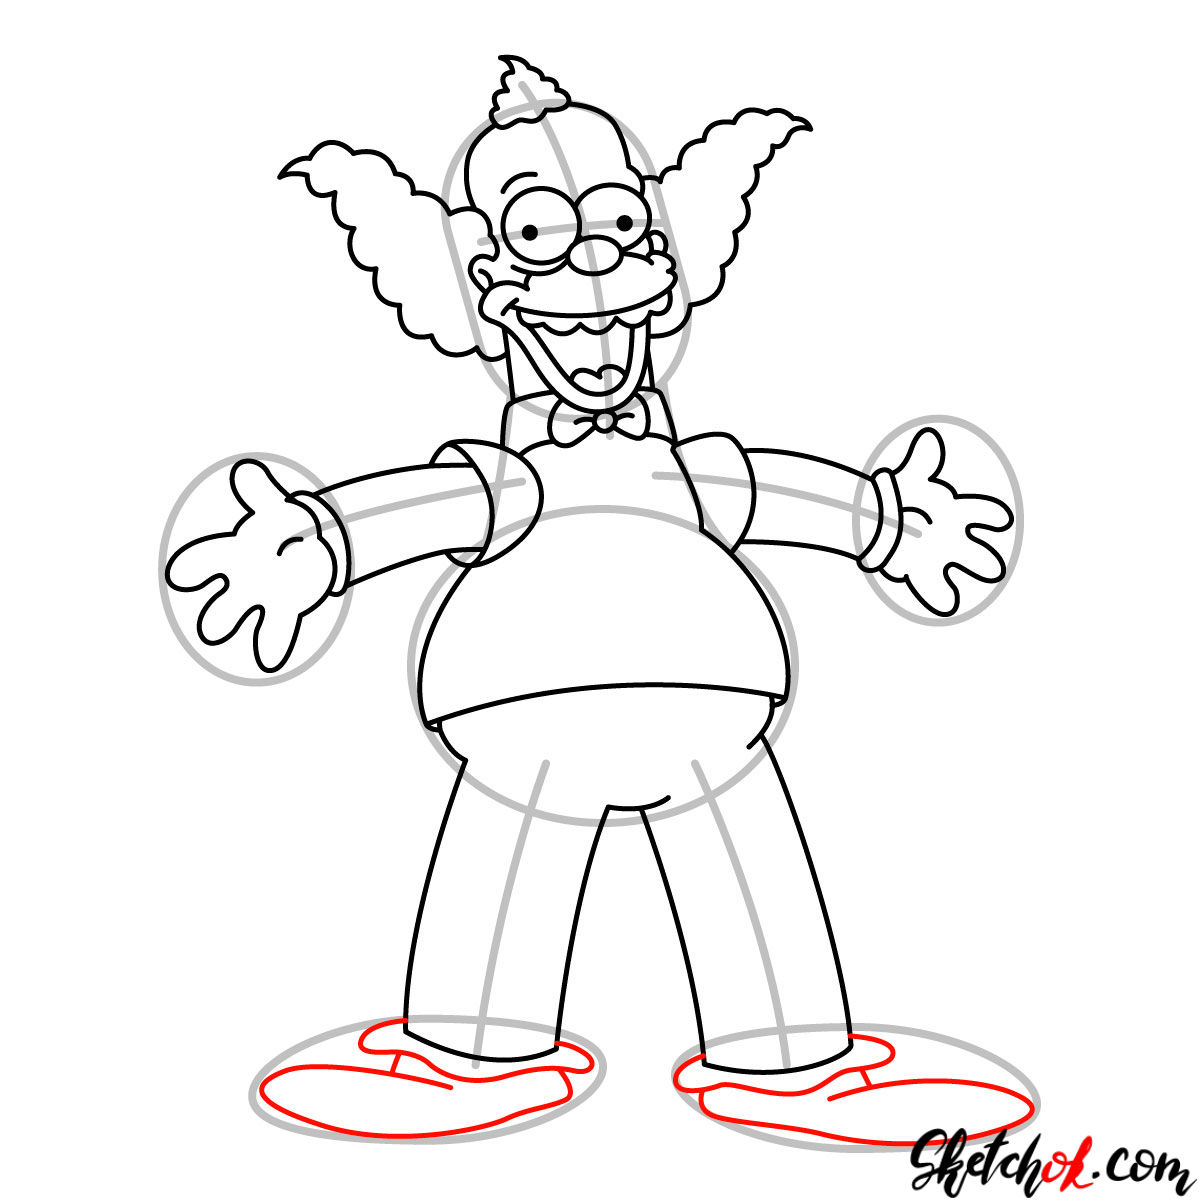 How to draw Krusty the Clown - step 11